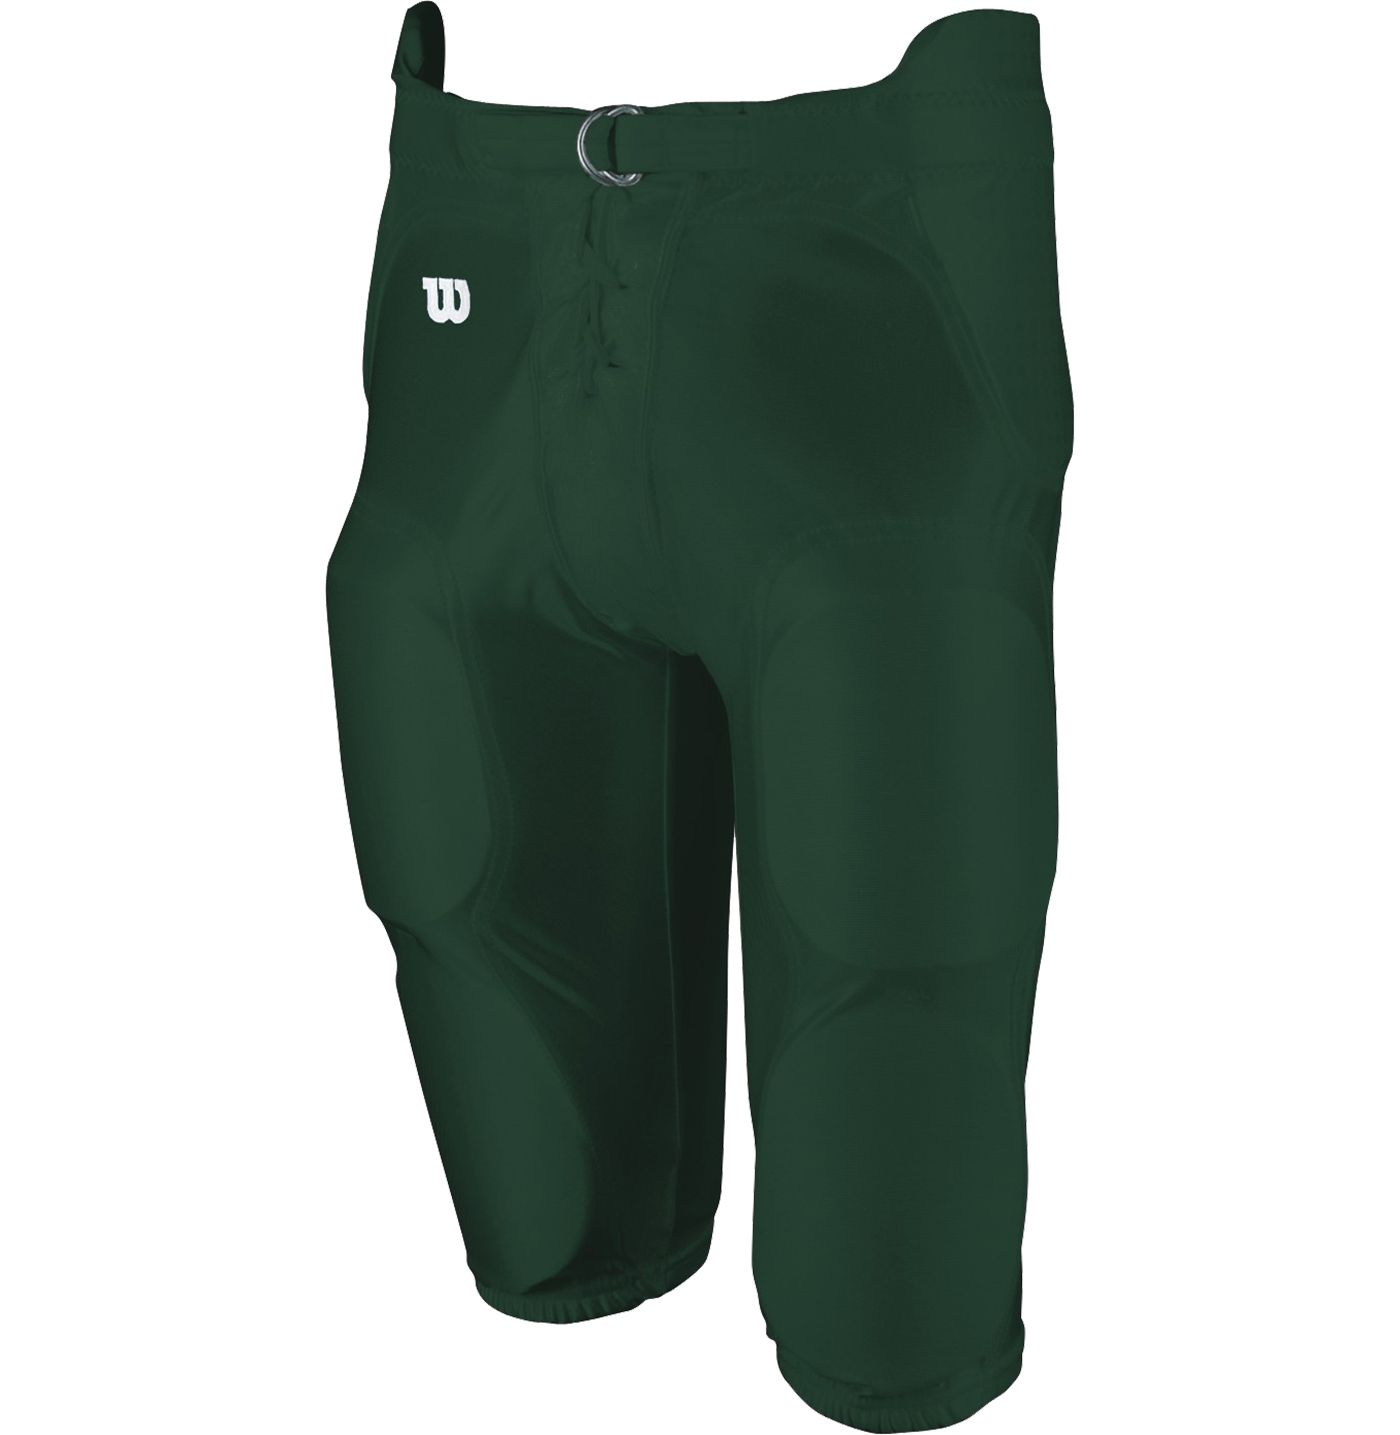 Wilson Youth Spandex Integrated Football Pants